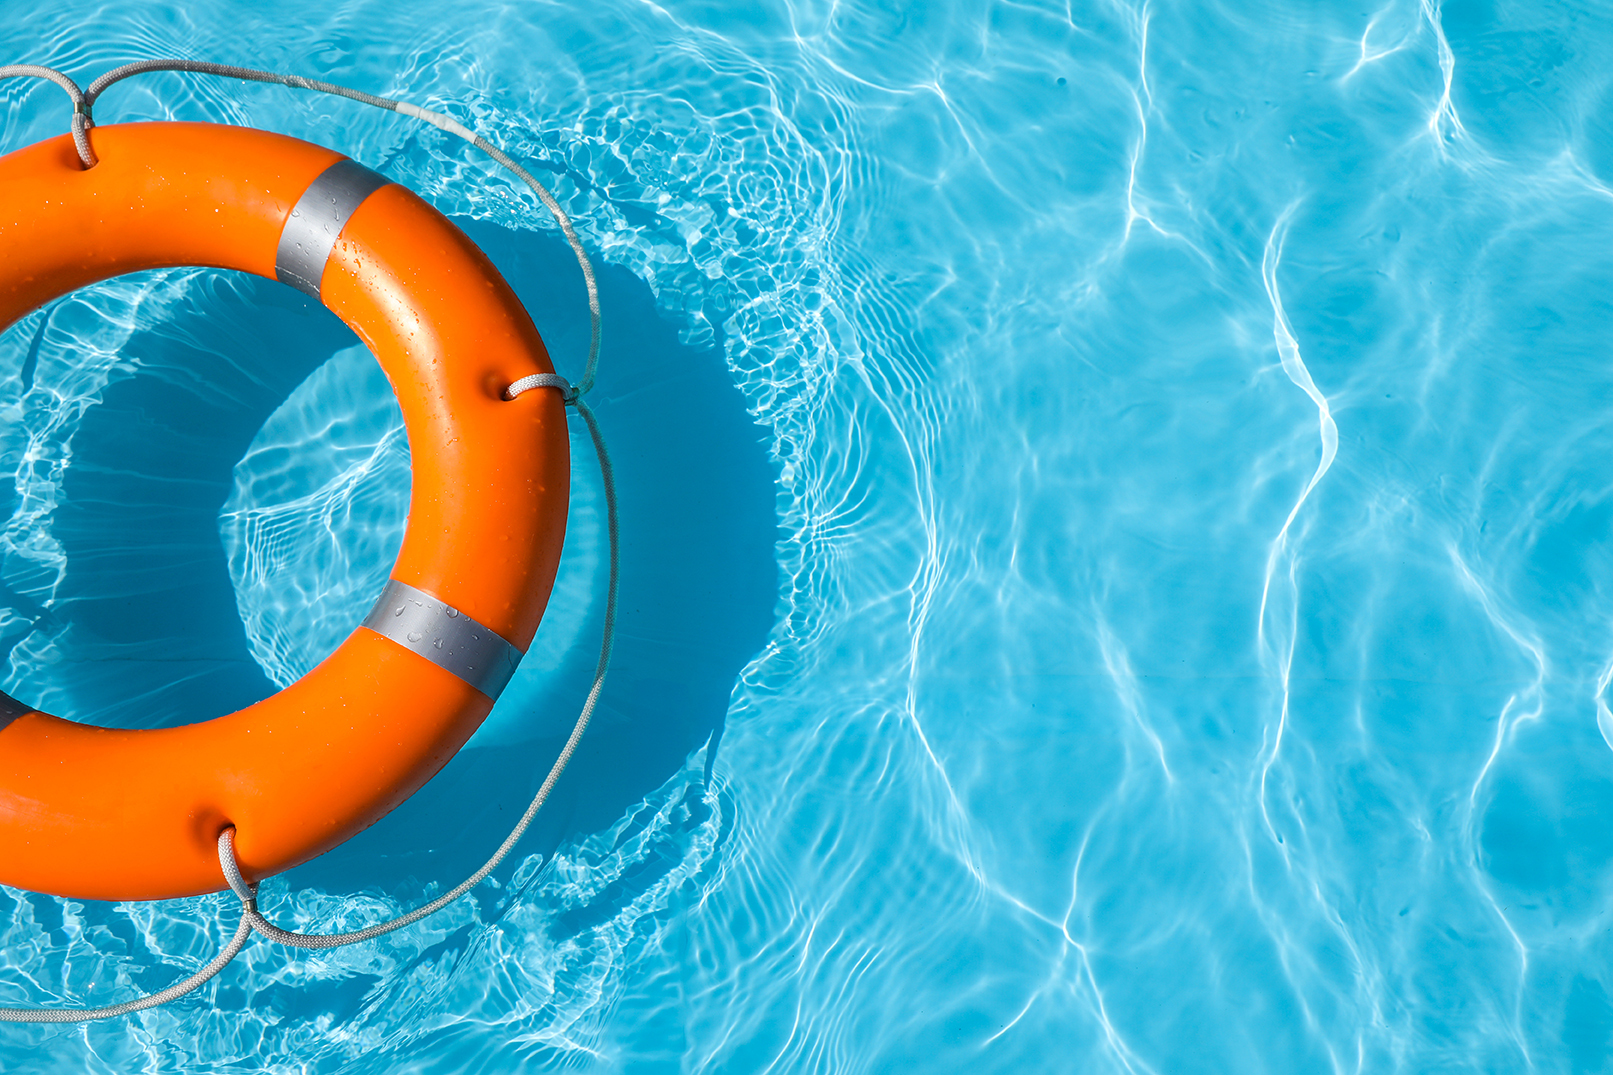 Lifebuoy floating in swimming pool on sunny day.